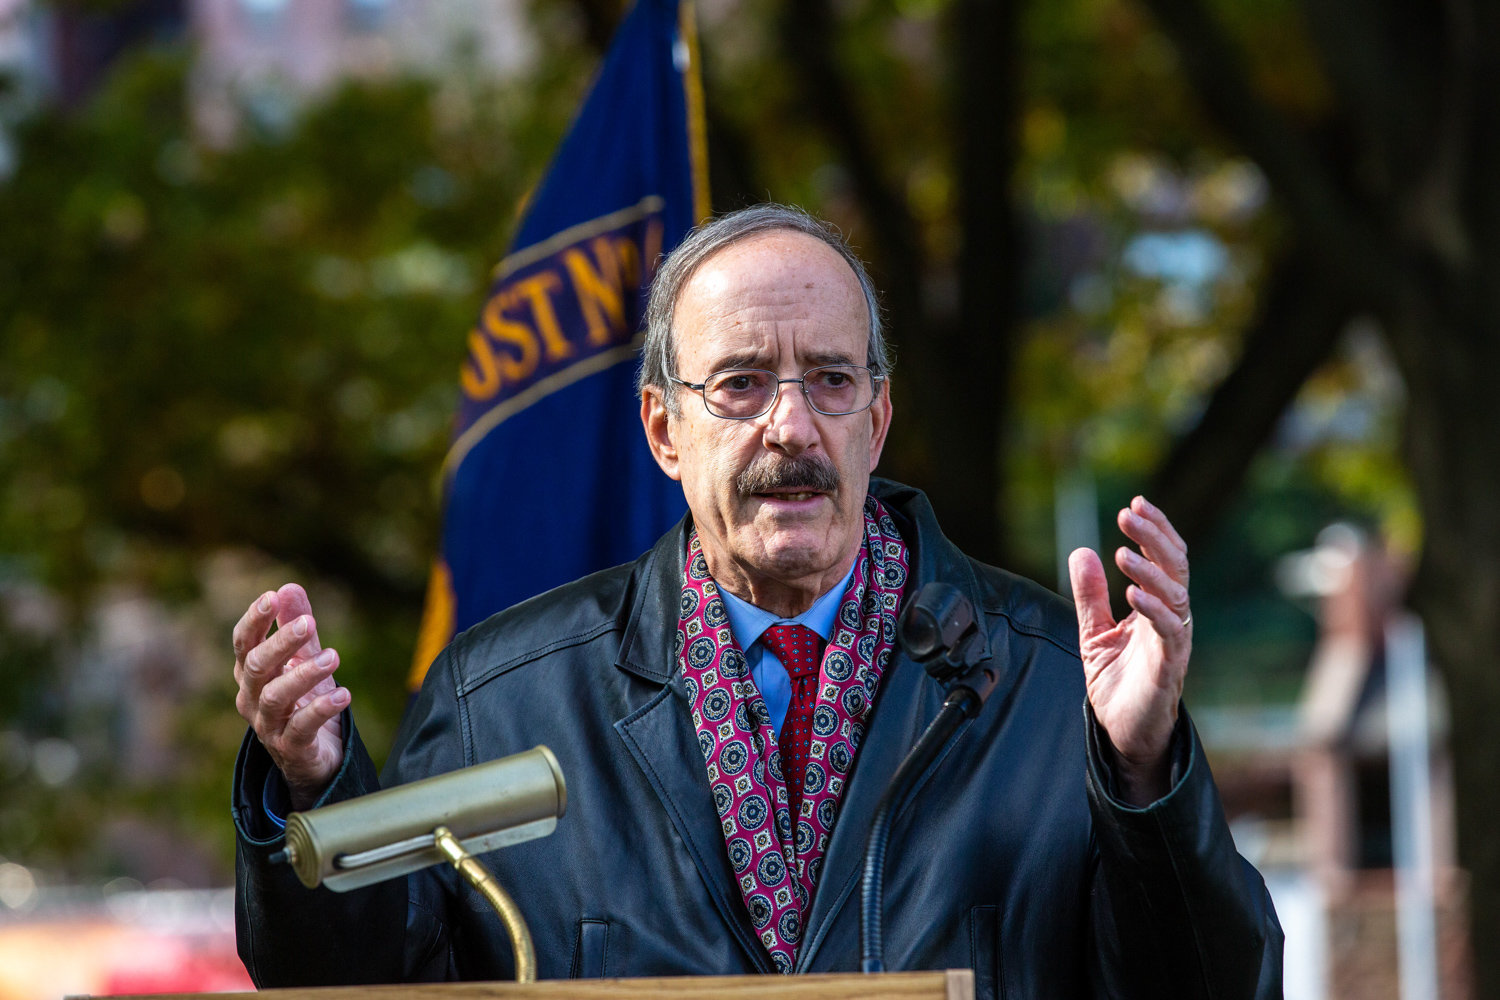 U.S. Rep. Eliot Engel leveraged his international connections as chair of the House Foreign Affairs Committee to jumpstart production at a Malaysian factory to produce a key component for a CPAP mask a Florida medical manufacturer says can help people suffering from COVID-19.